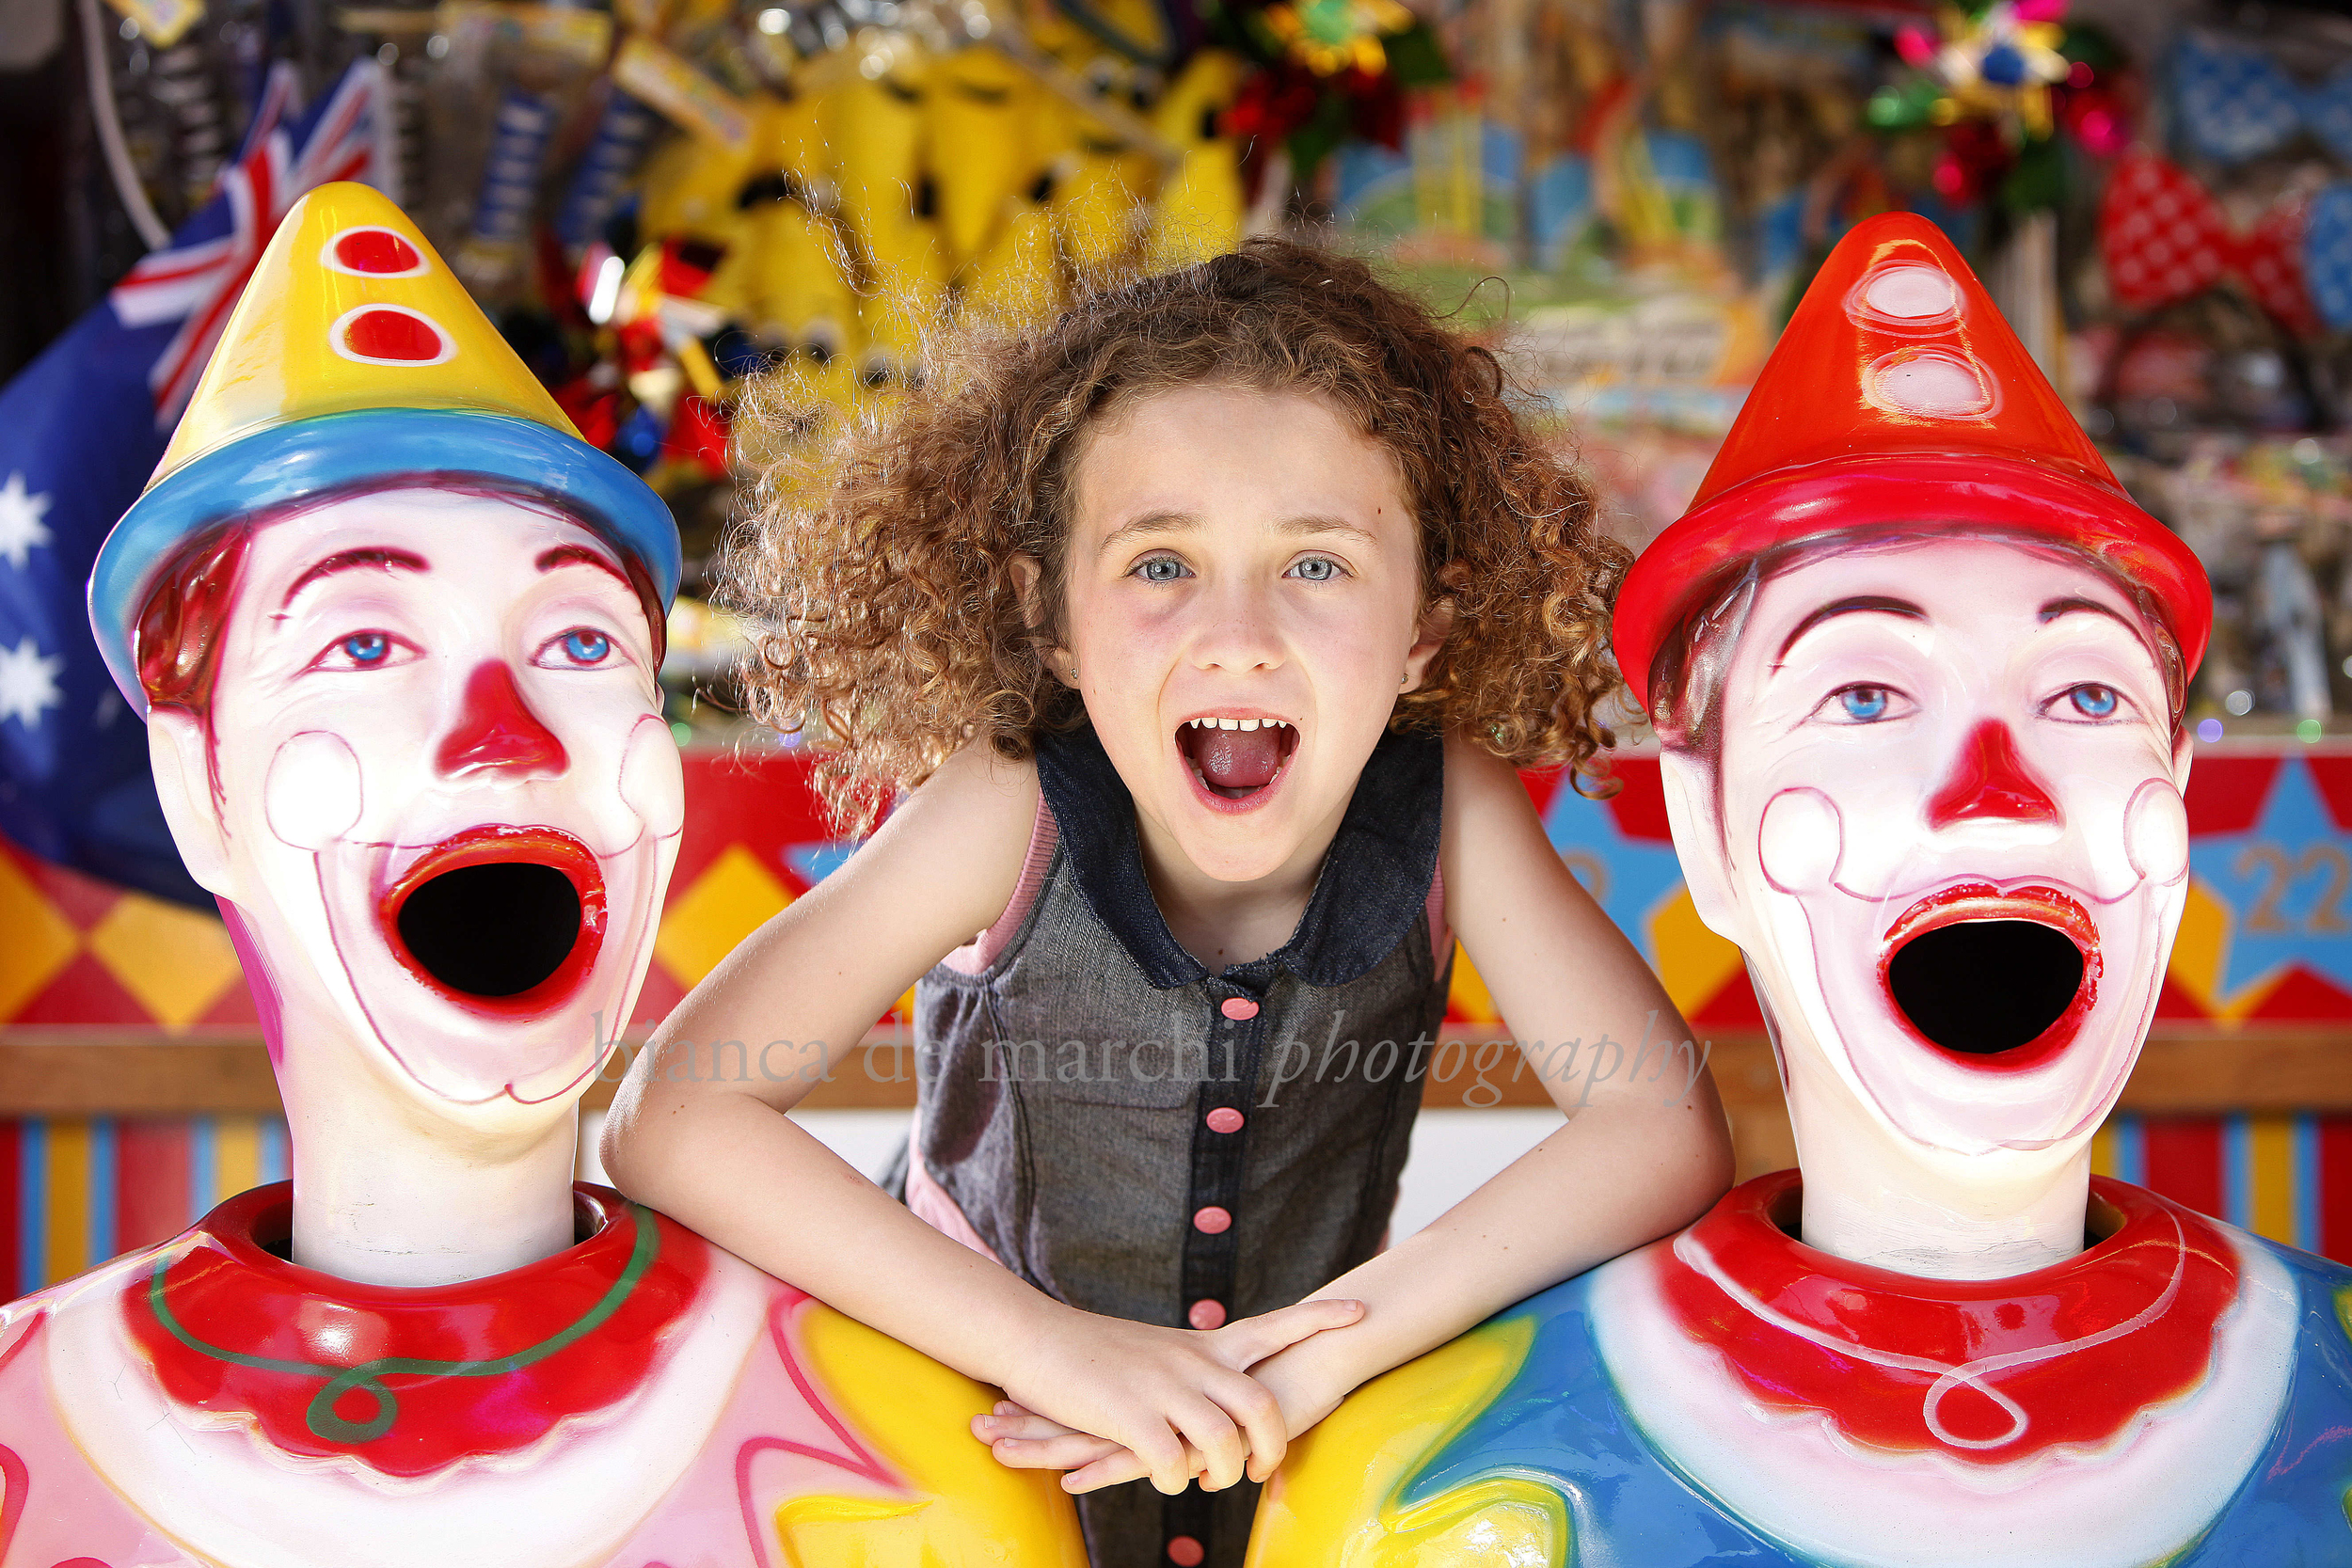 CHP_Export_124834406_Jaeda Prosser 6yrs- mum mandy mallon 0414662151 clowns around at the 2015 Royal.jpg